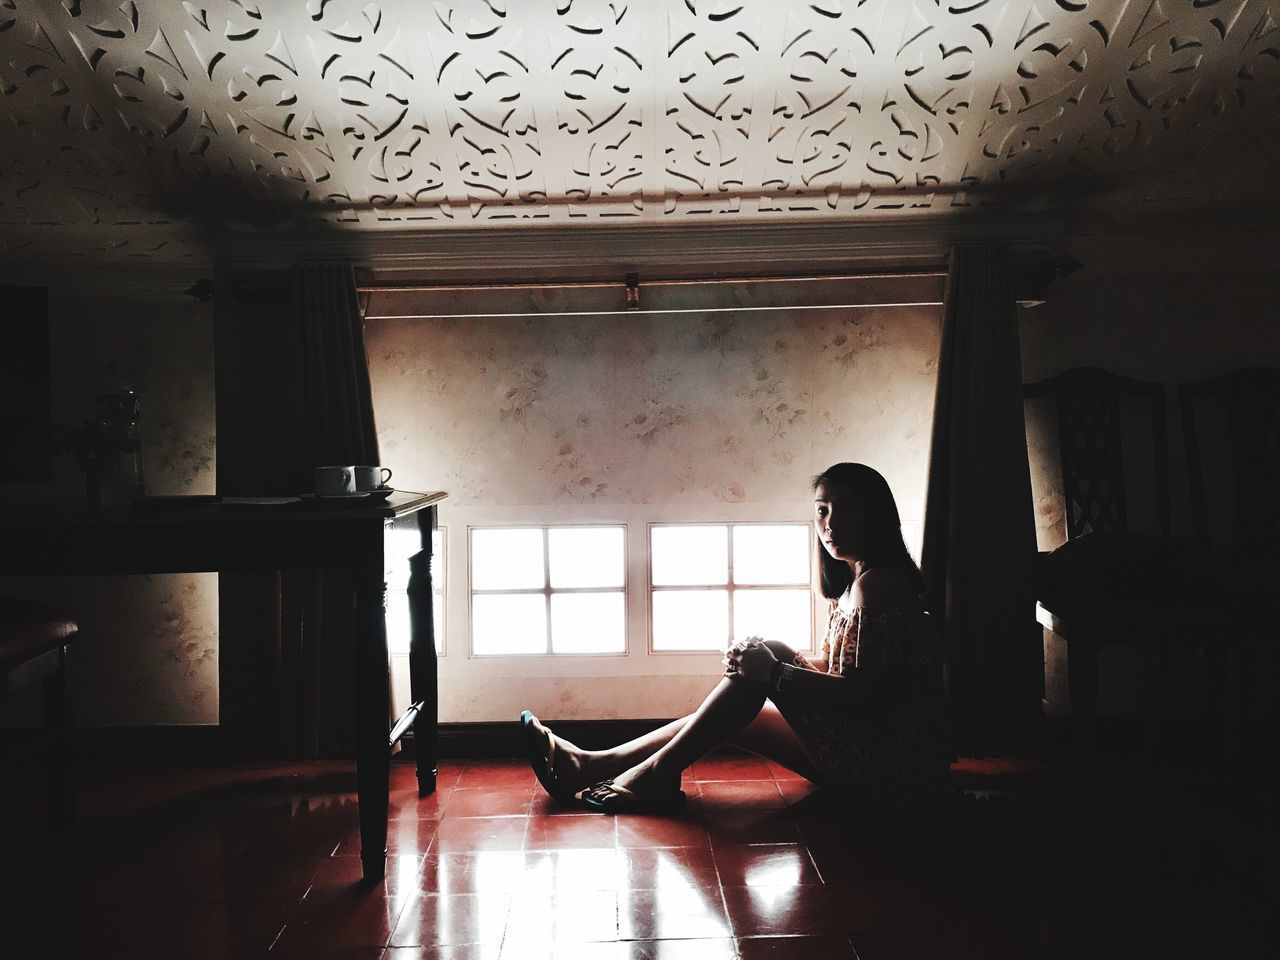 indoors, one person, real people, home interior, window, lifestyles, young women, young adult, women, sitting, day, adult, people